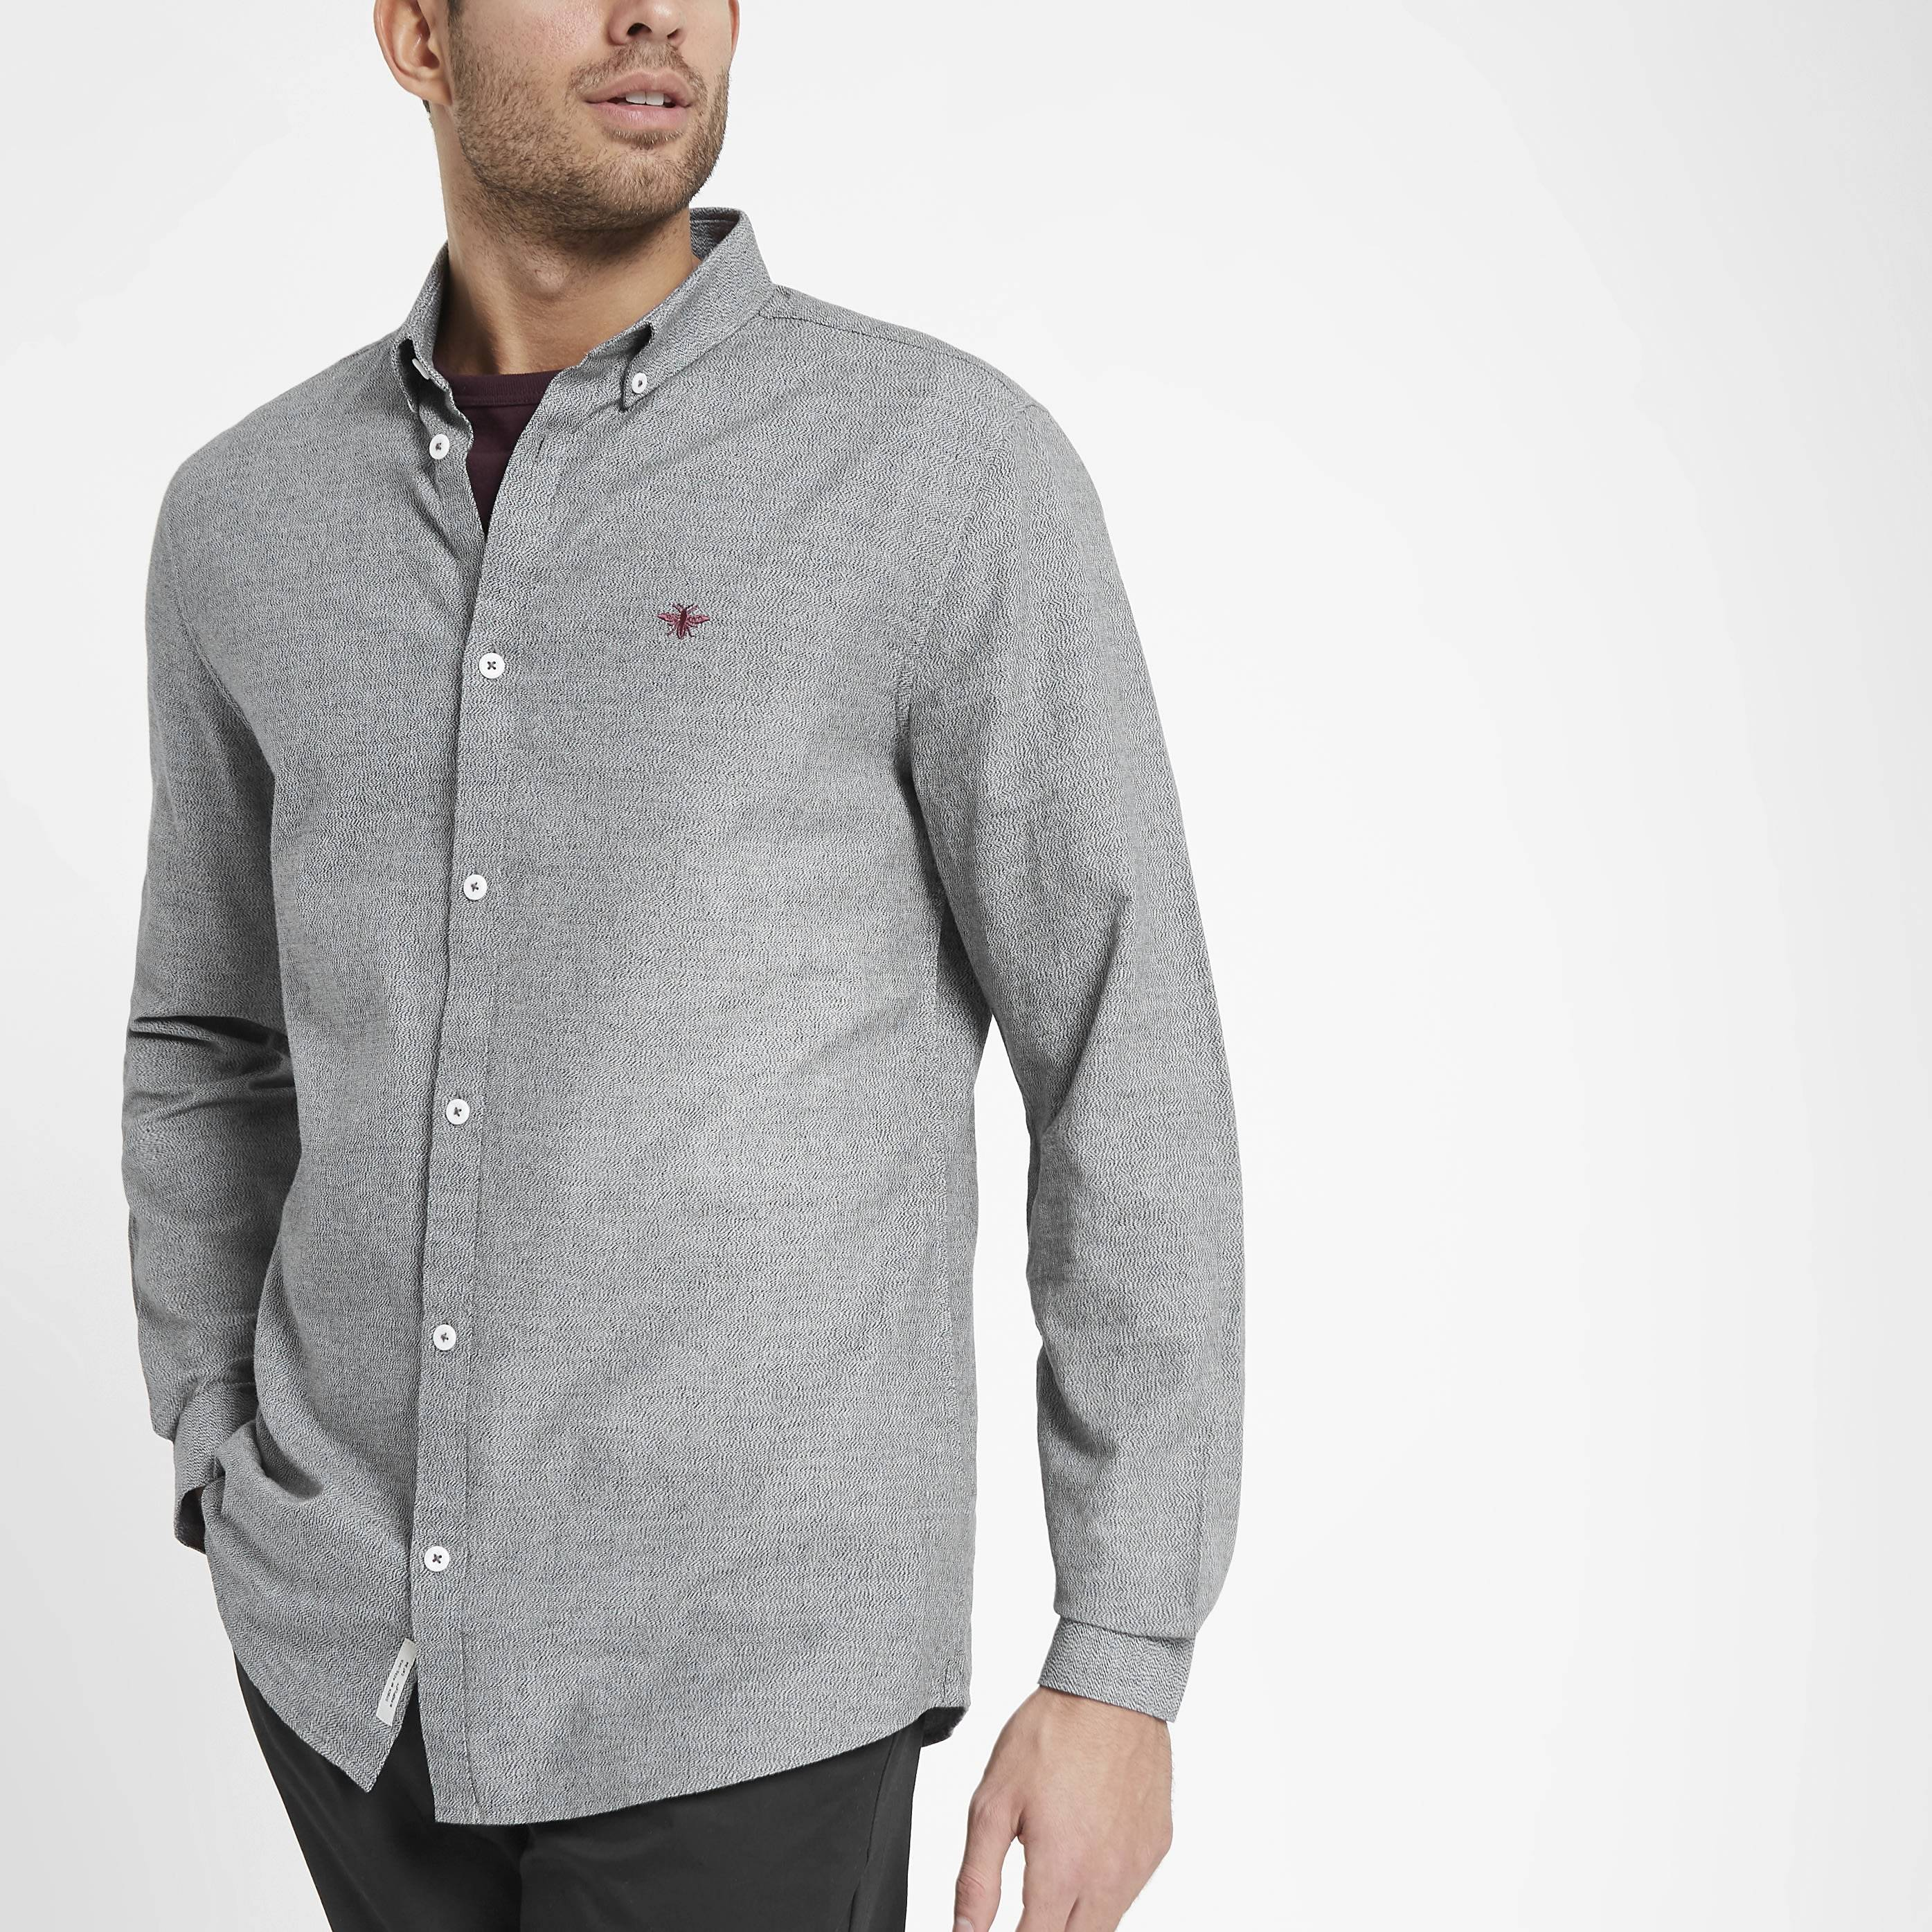 River Island Mens Grey grindle wasp embroidered Oxford shirt (XXS)